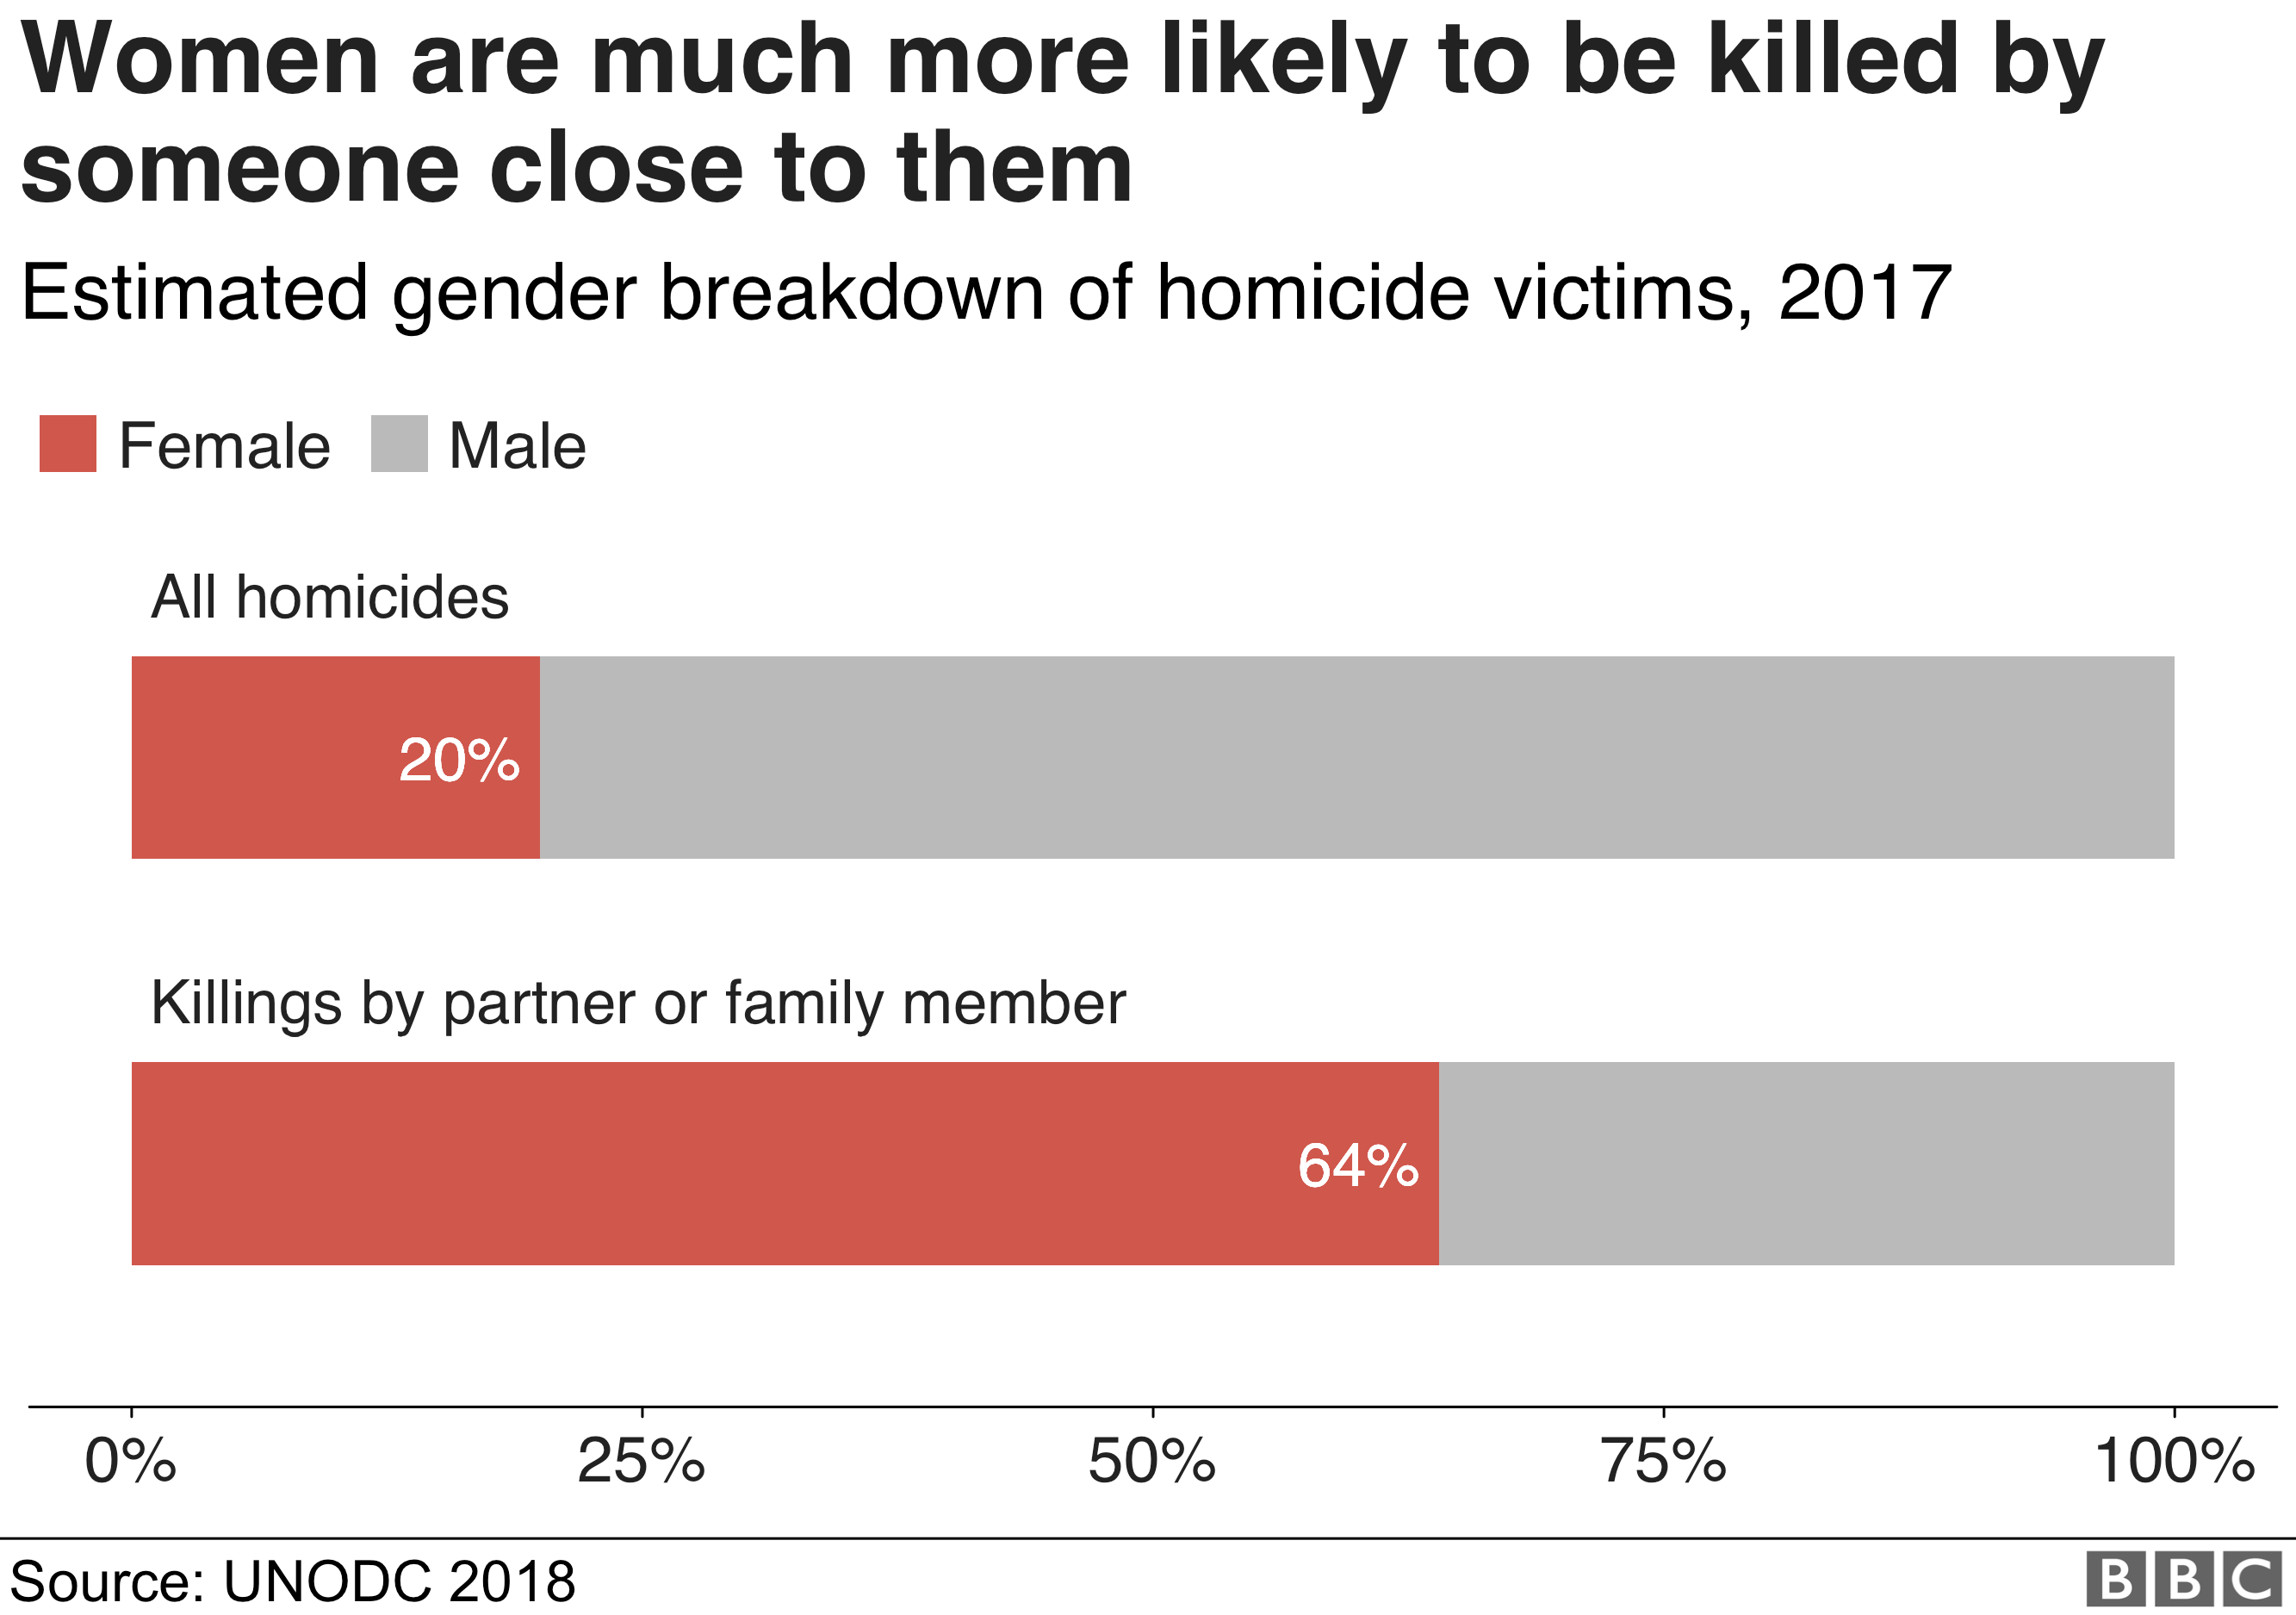 Women are much more likely to be killed by someone close to them